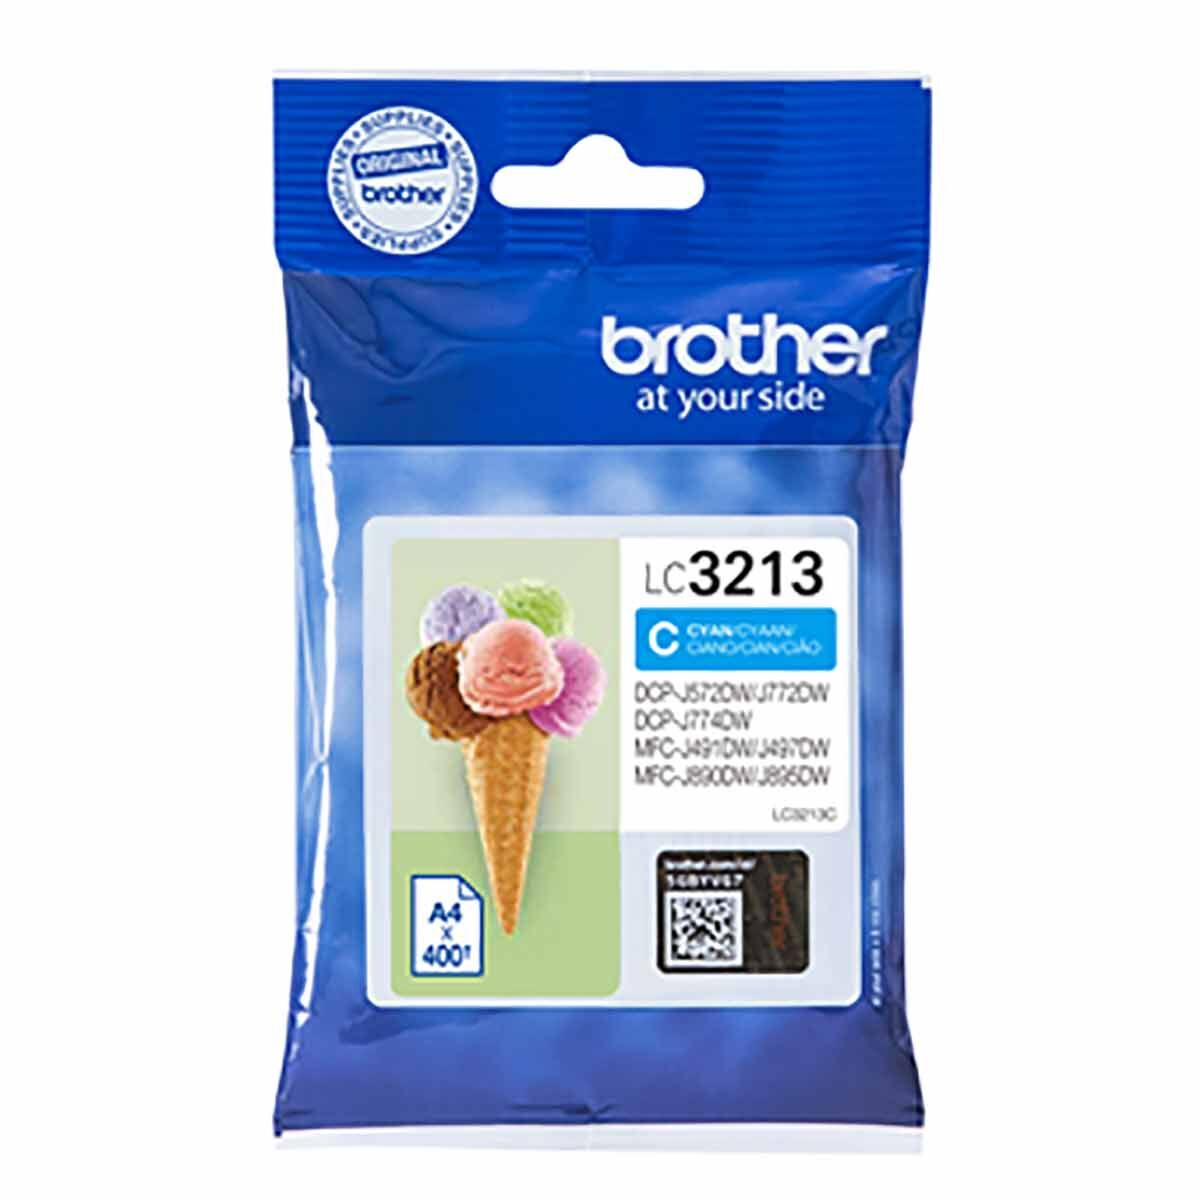 Brother Original Ink Cartridge Cyan